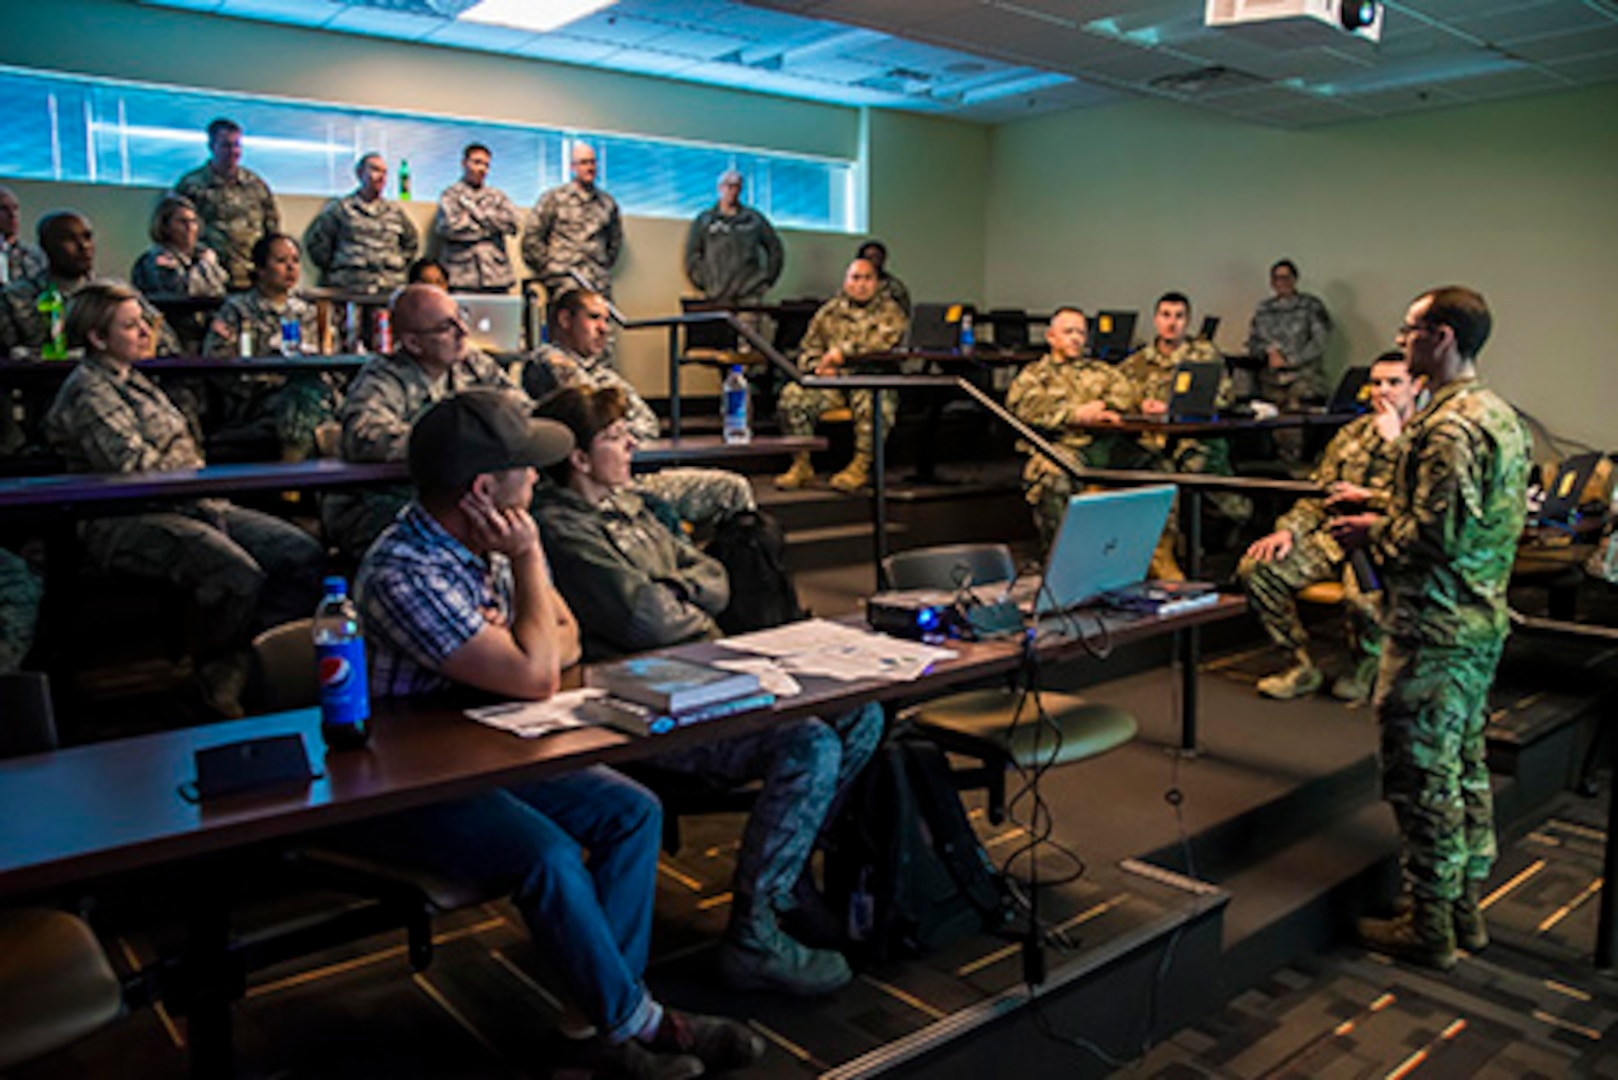 Chief Warrant Officer 2 Adam Johnston, of the Colorado National Guard's Defensive Cyber Operations Element, provides a briefing to the Joint Task Force - Centennial, about what the Vital Connection cyber exercise tests for and the overall process, at the Regis University training center in Greenwood Village, Colo., Feb. 12, 2017. (U.S. Air National Guard Photo by Maj. Darin Overstreet)